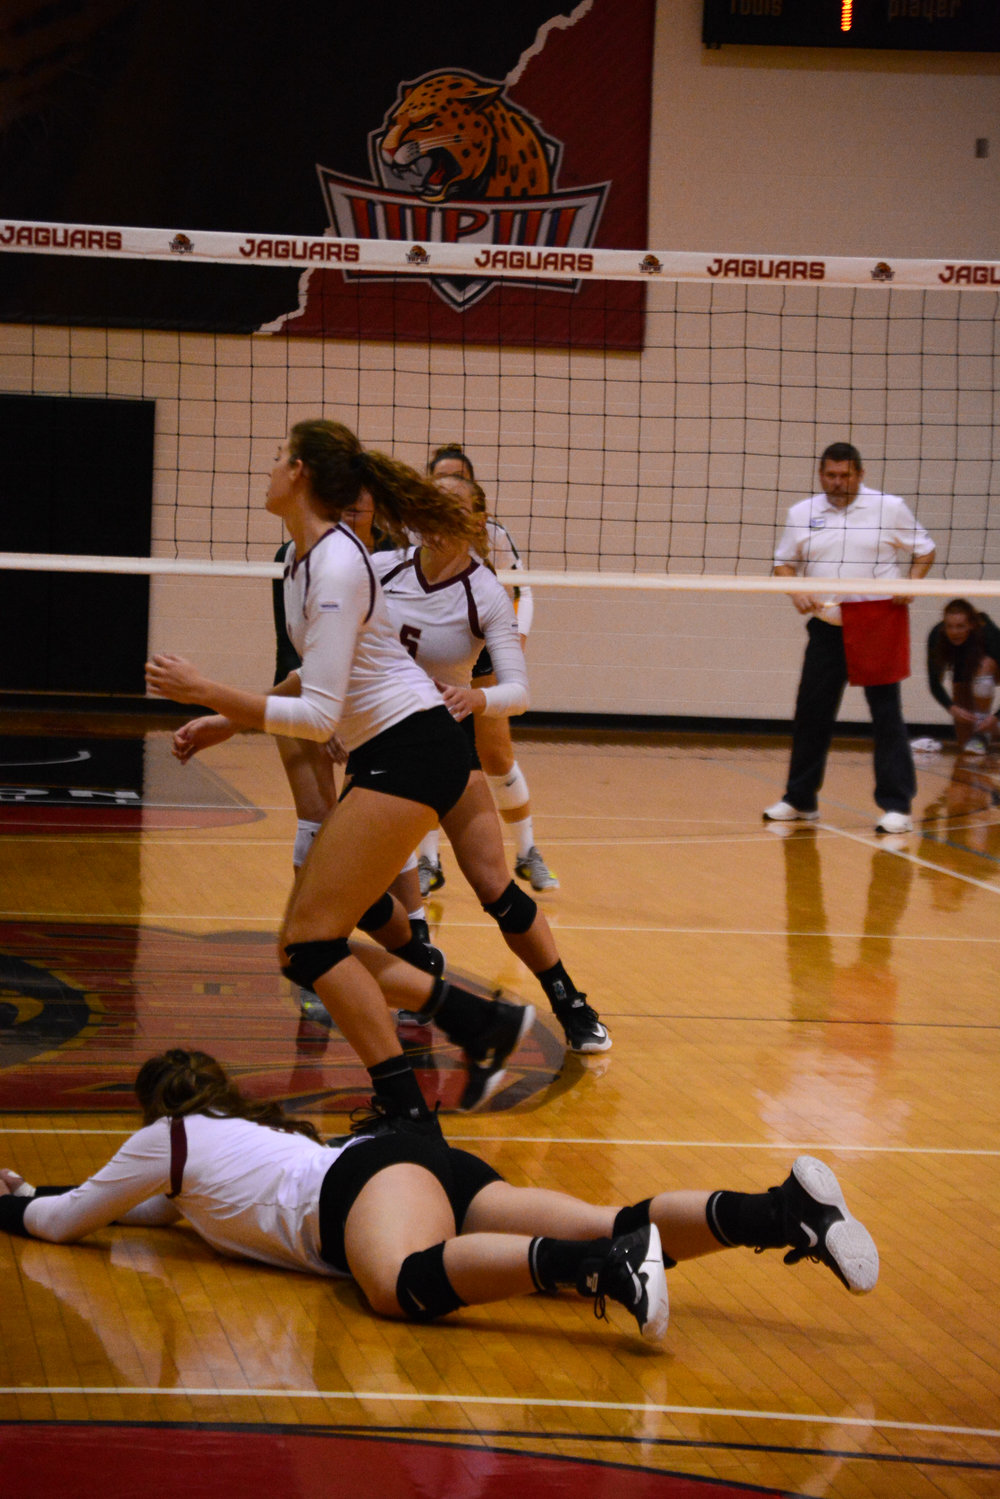 An IUPUI player saves the ball in the third set  of the match.